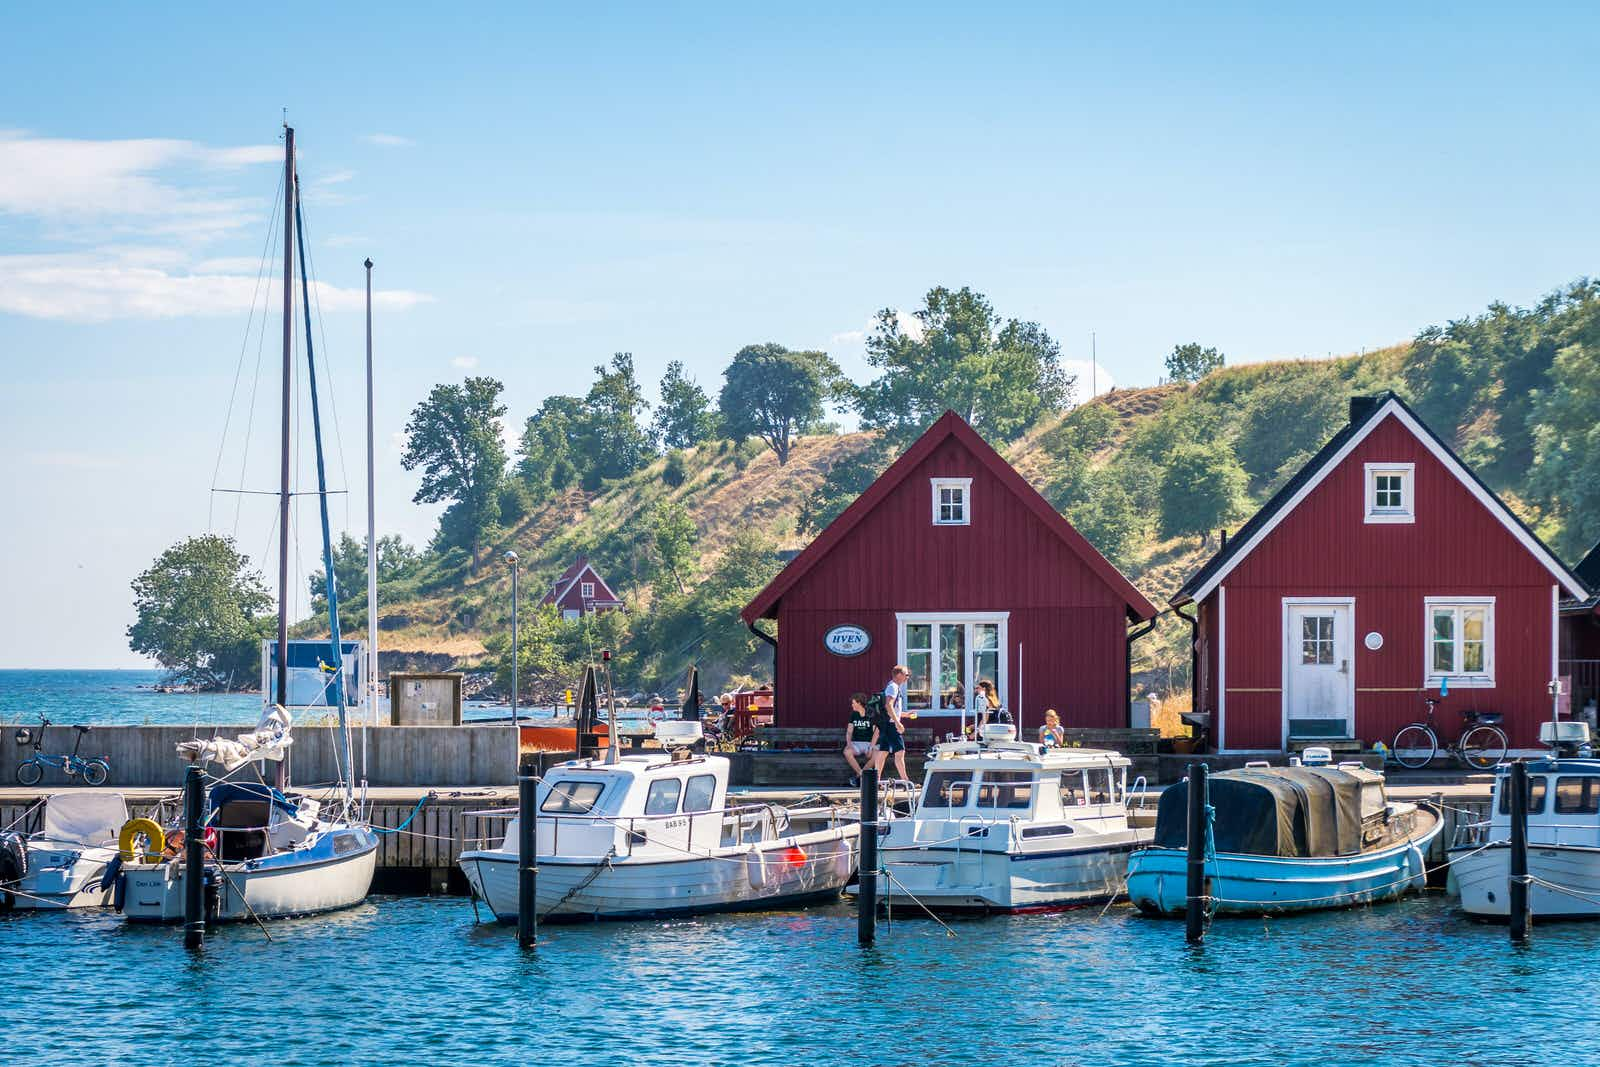 Small boats are docked in front of two red triangular buildings on a sunny day on Ven island, Sweden